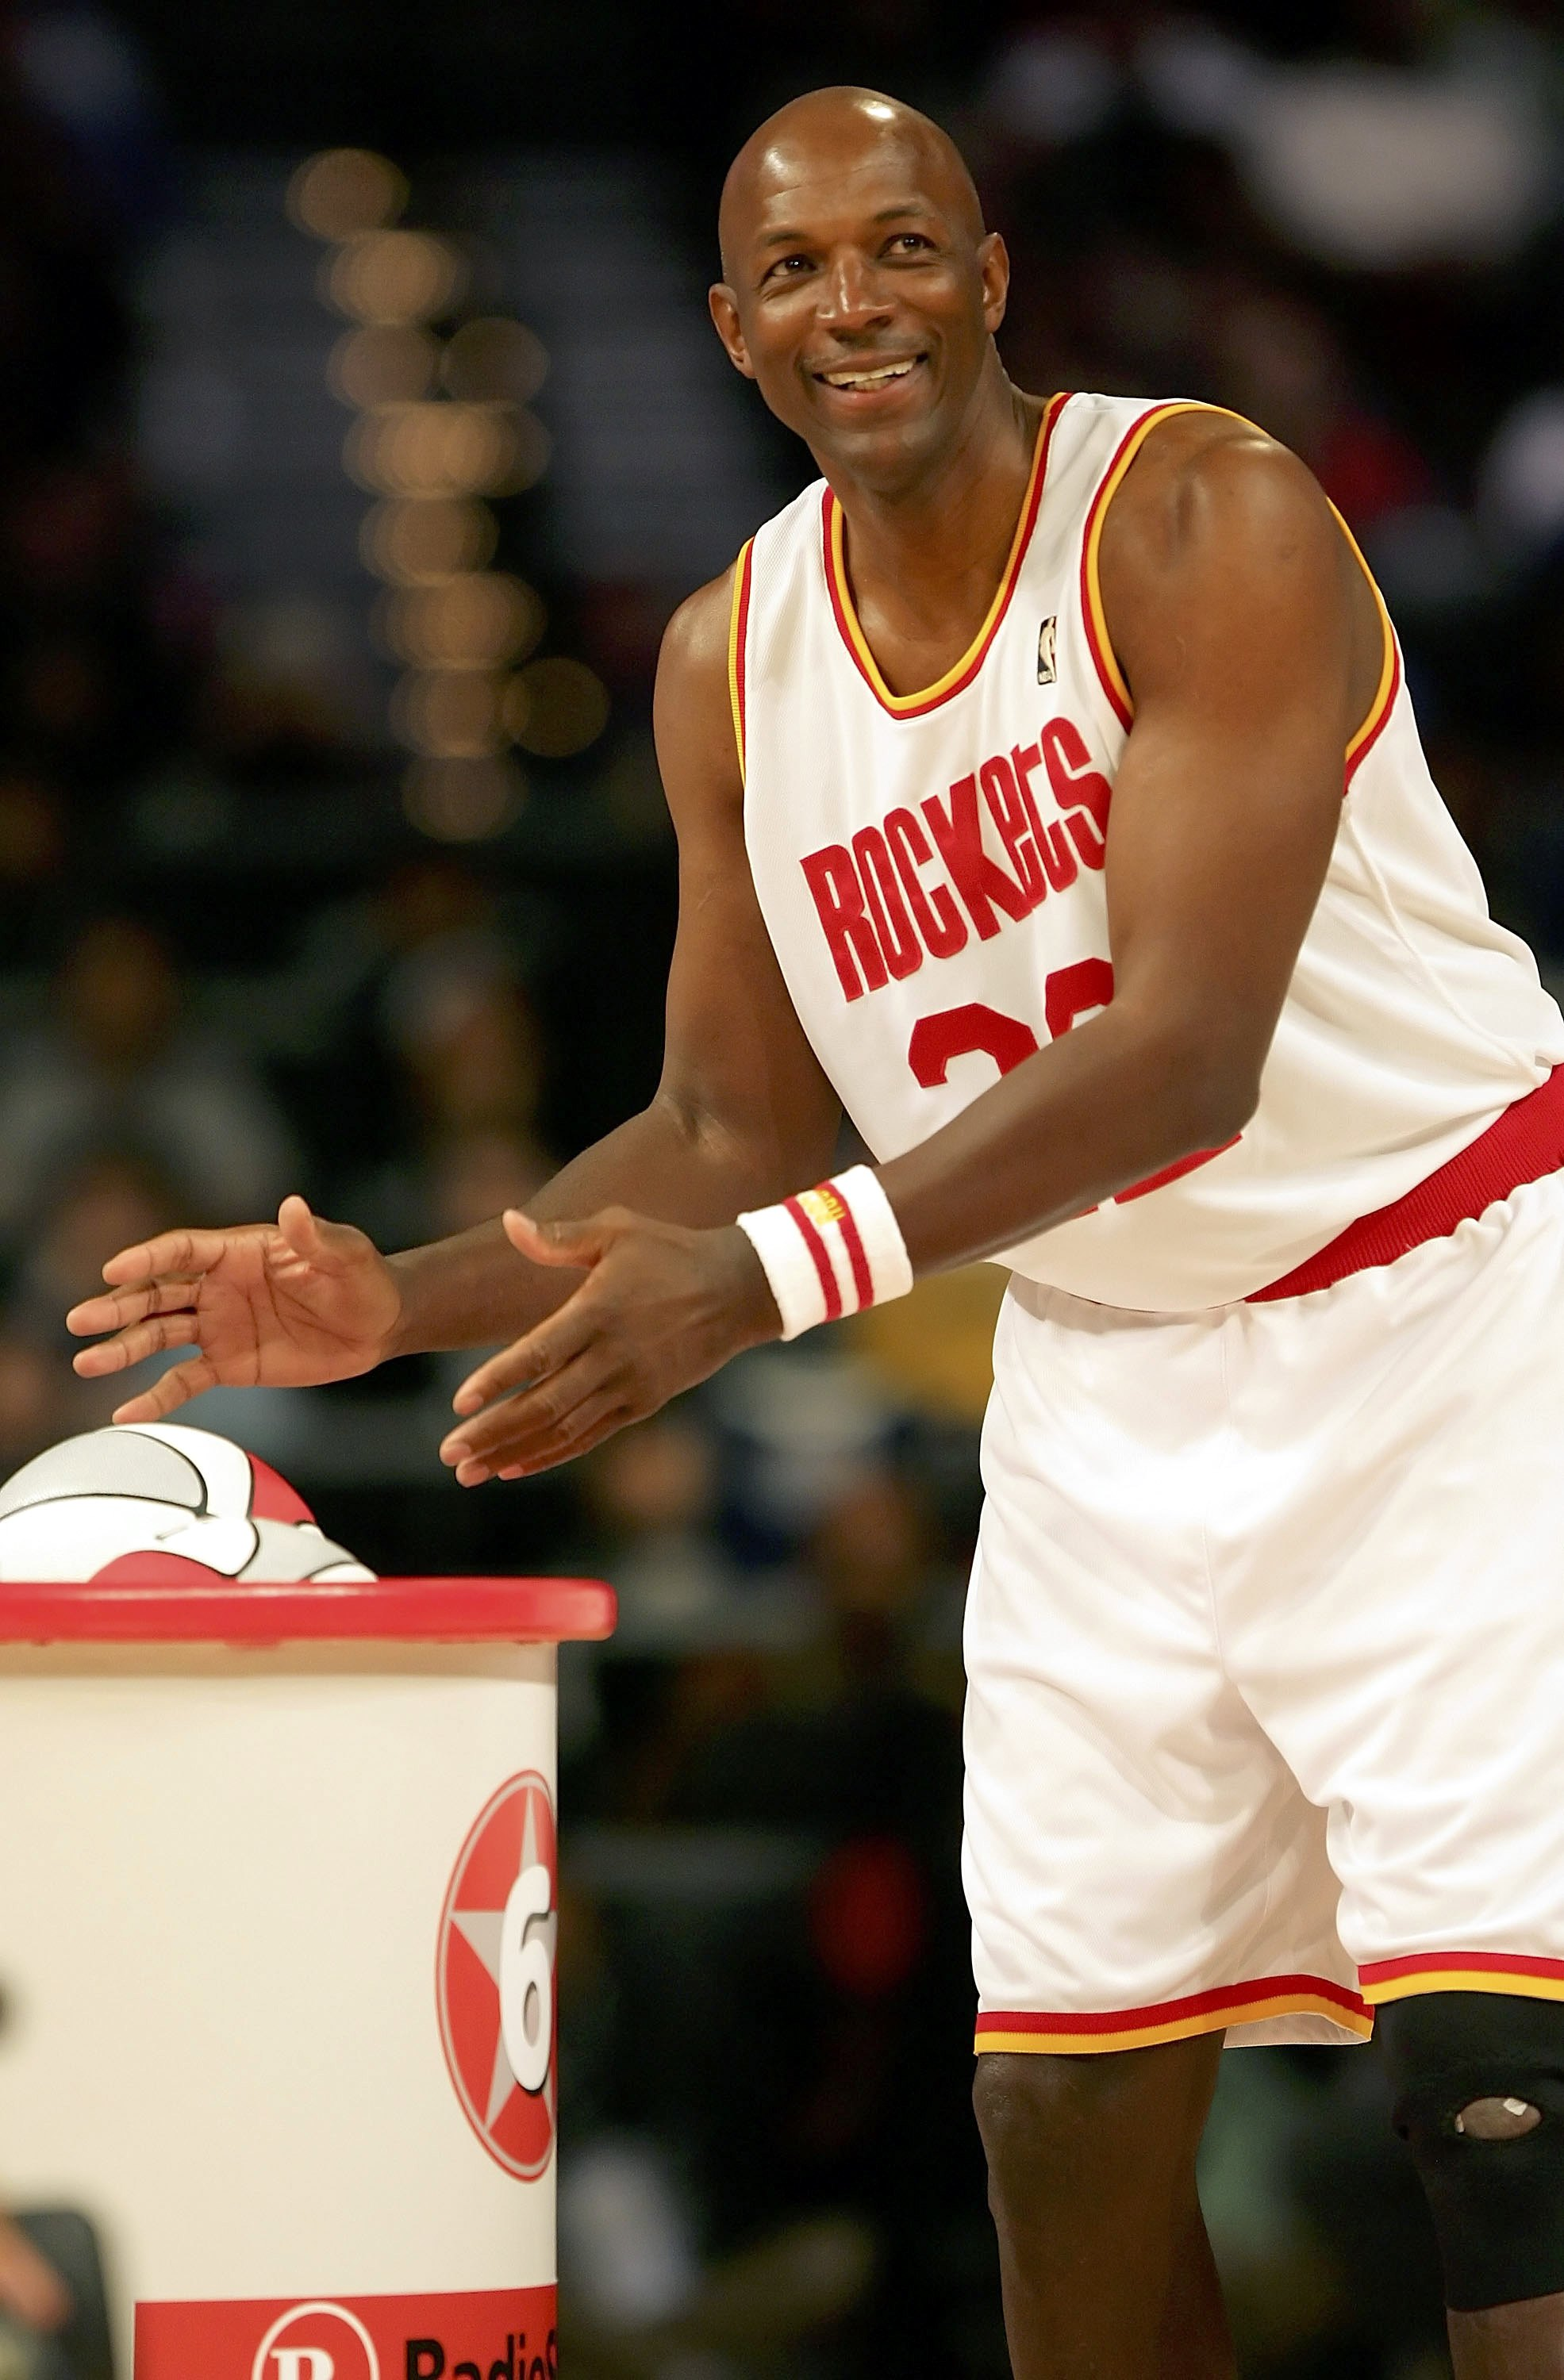 HOUSTON - FEBRUARY 18:  Clyde Drexler #22 of the Houston team smiles as he reaches for a ball in the Radio Shack Shooting Stars competition during NBA All-Star Weekend at the Toyota Center on February 18, 2006 in Houston, Texas.  NOTE TO USER: User expres